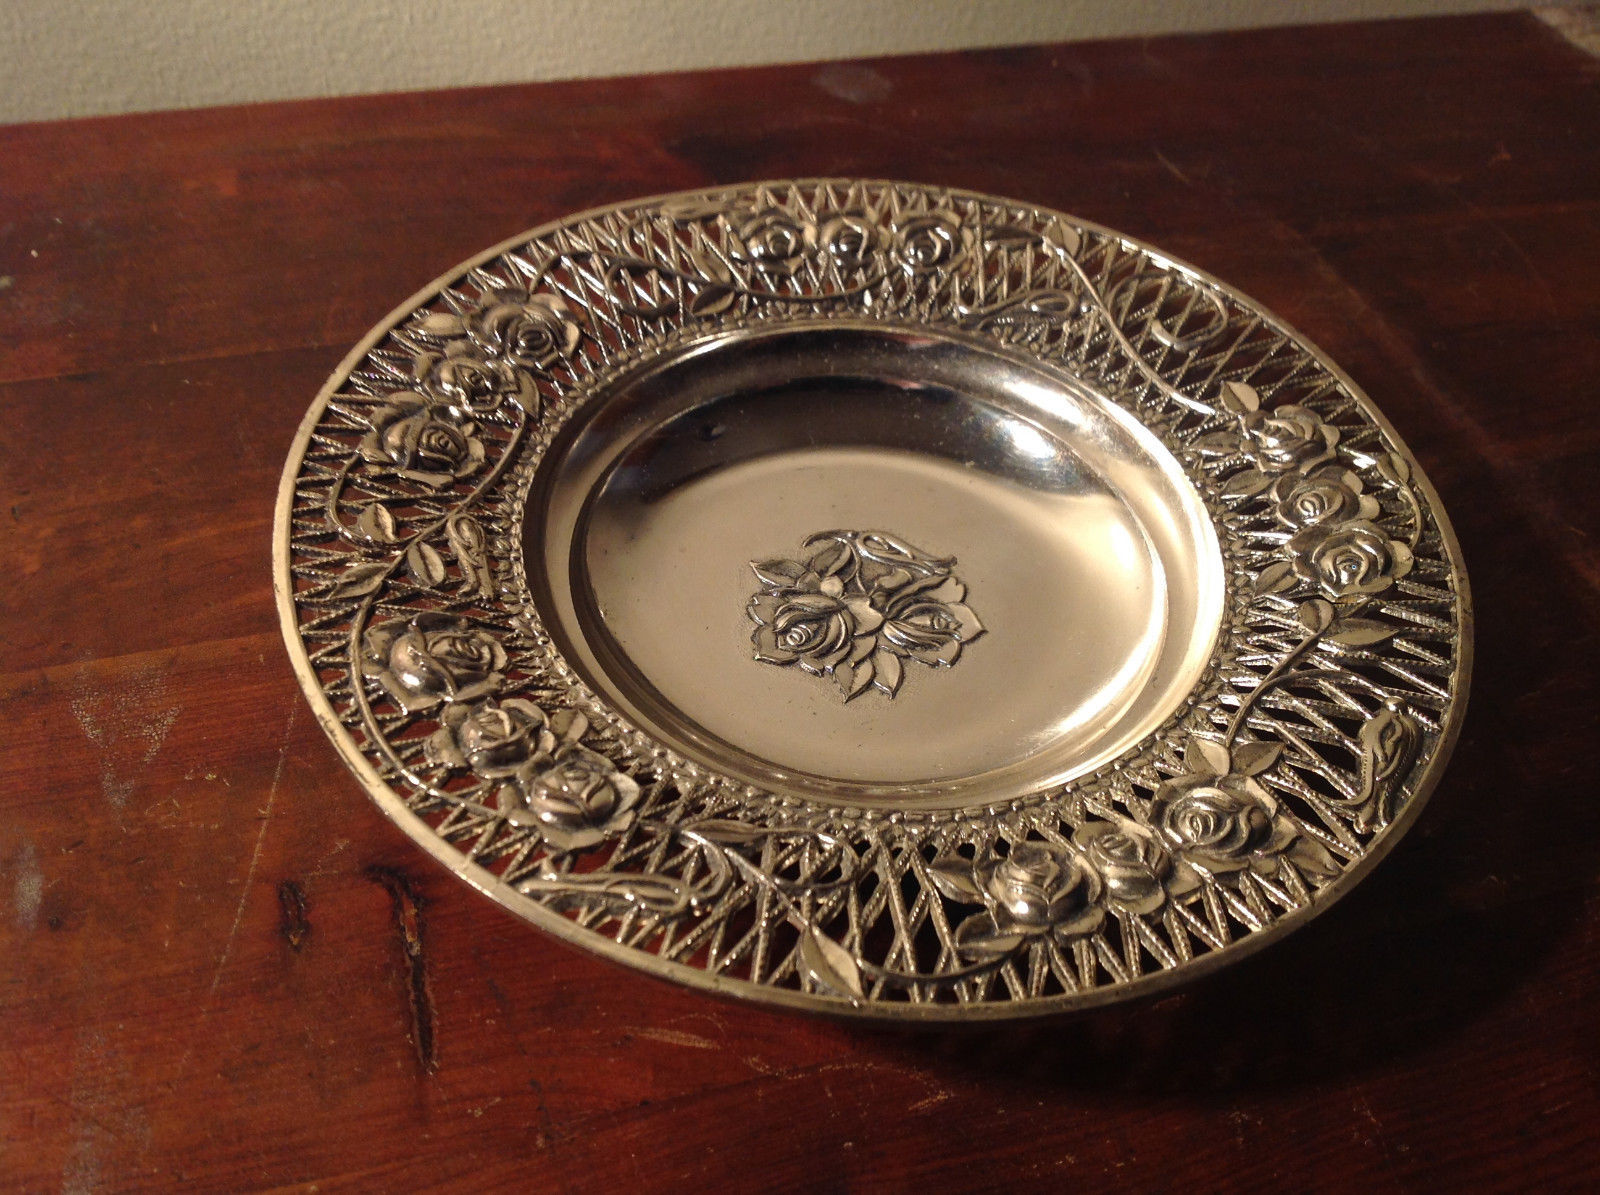 Intricate Roses Flowers Metal Silver Tone Welded Plate Tray